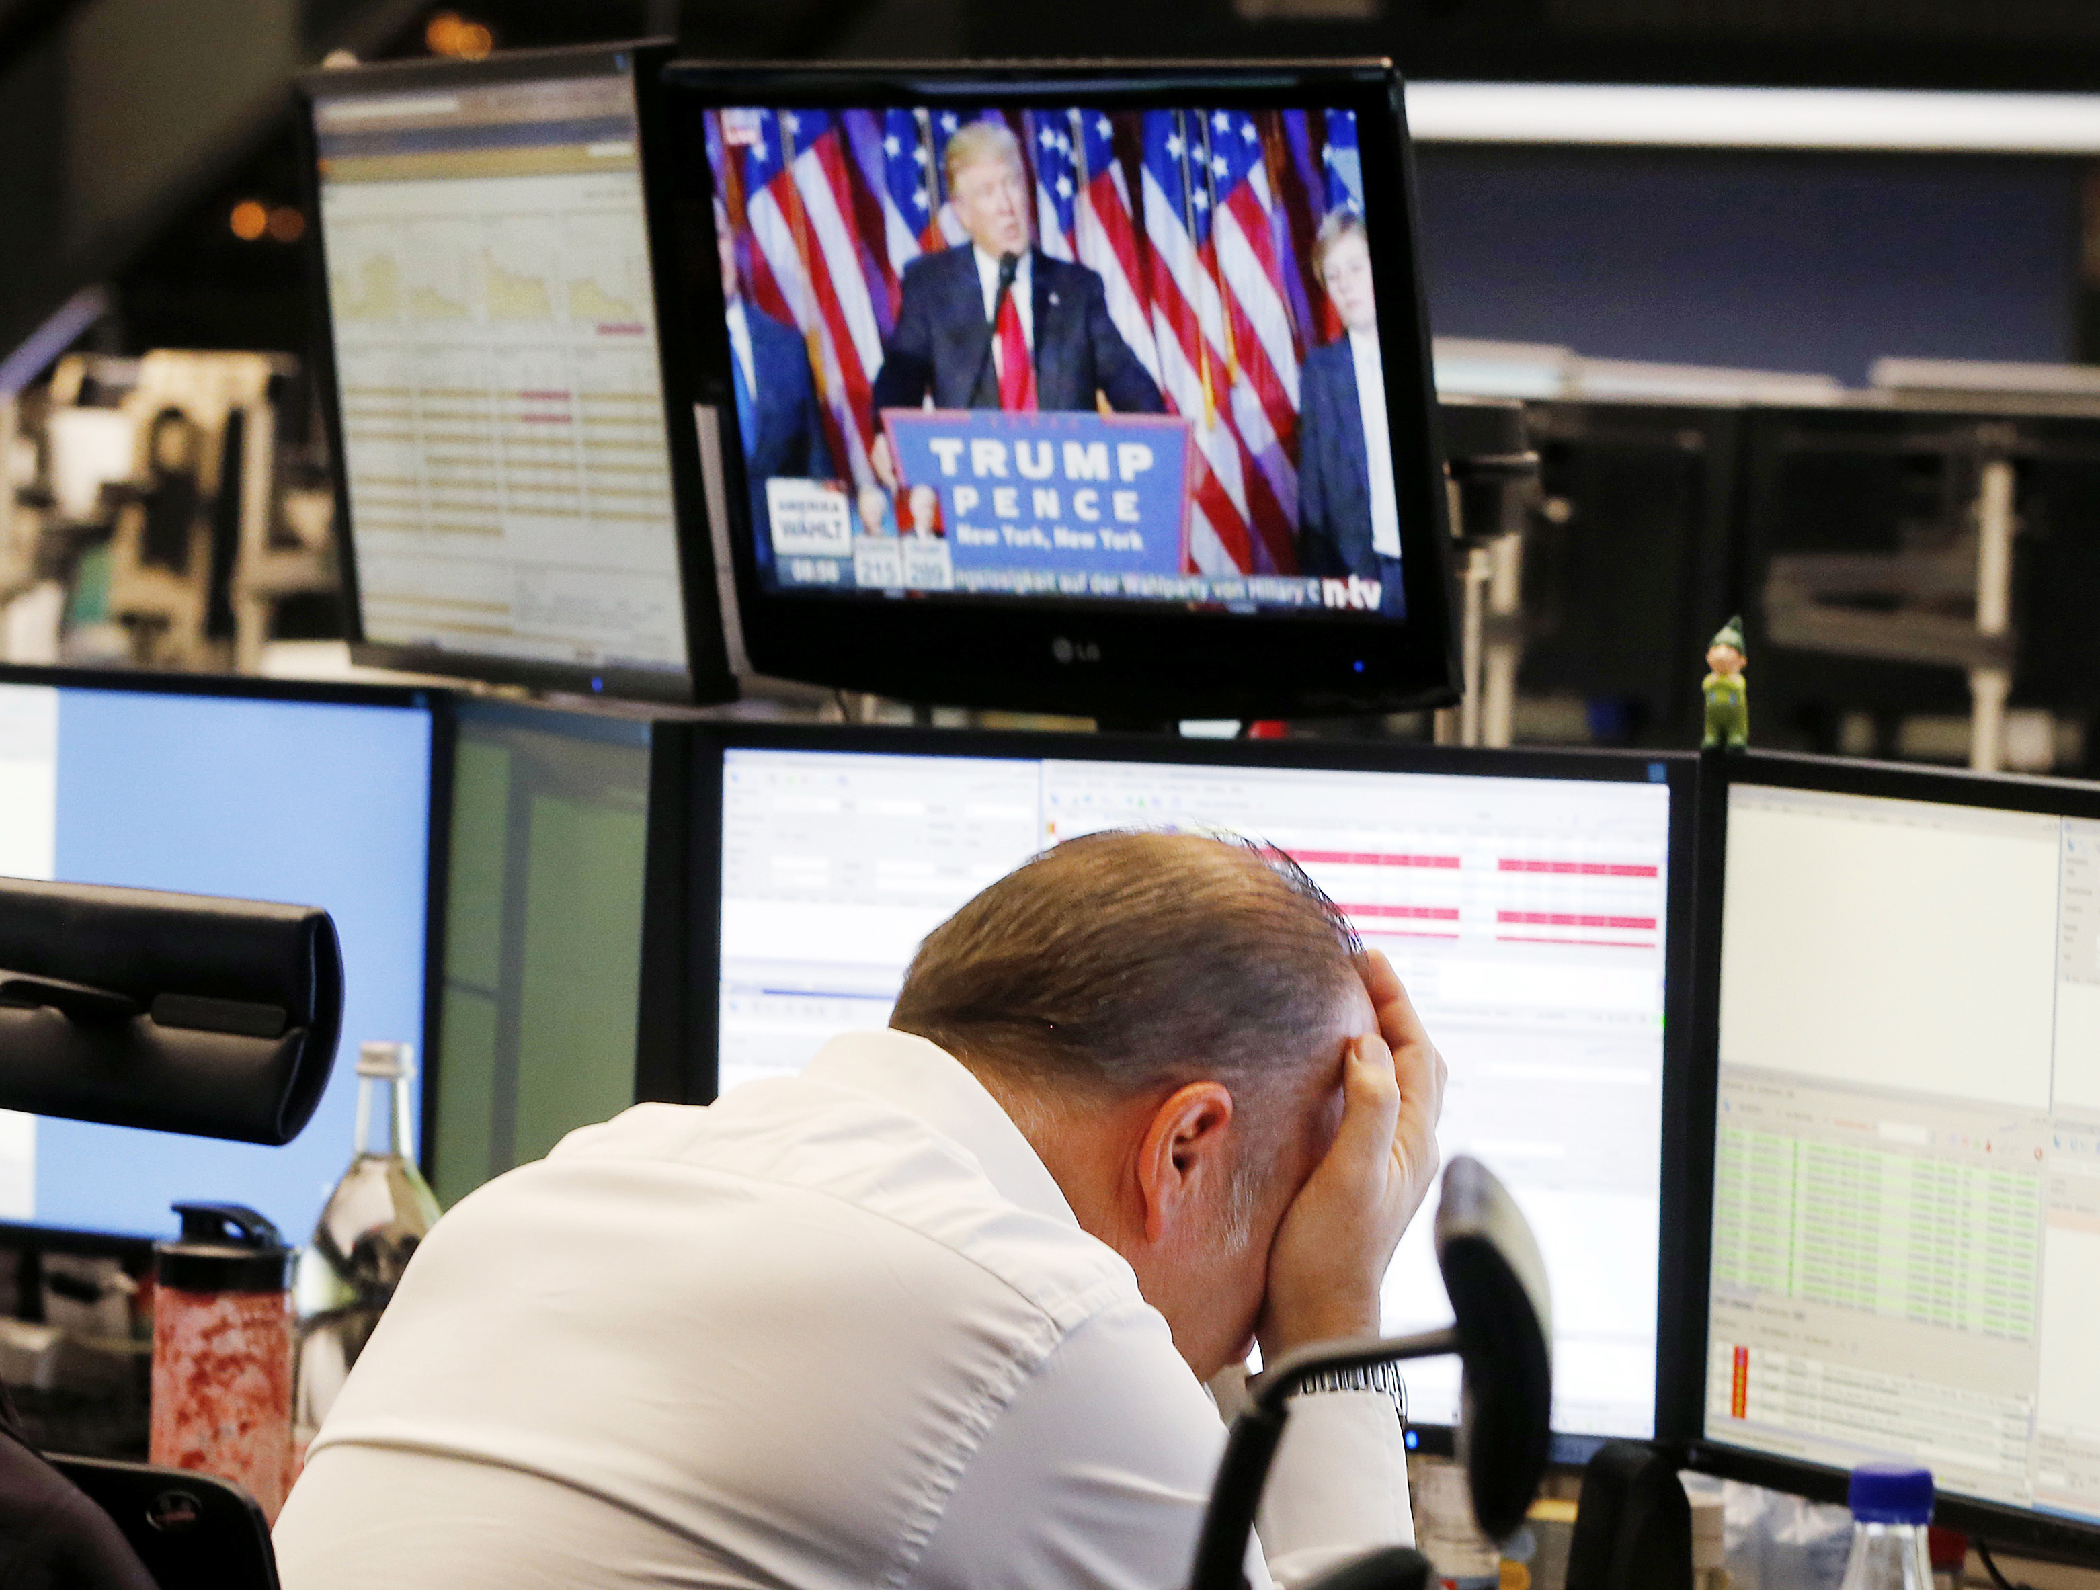 "In Germany, the DAX exchange <a href=""http://www.dw.com/en/markets-jittery-after-trump-wins-election/a-36317916"" target=""_blank"">fell</a> 3% after trading began, following news of Trump's victory."